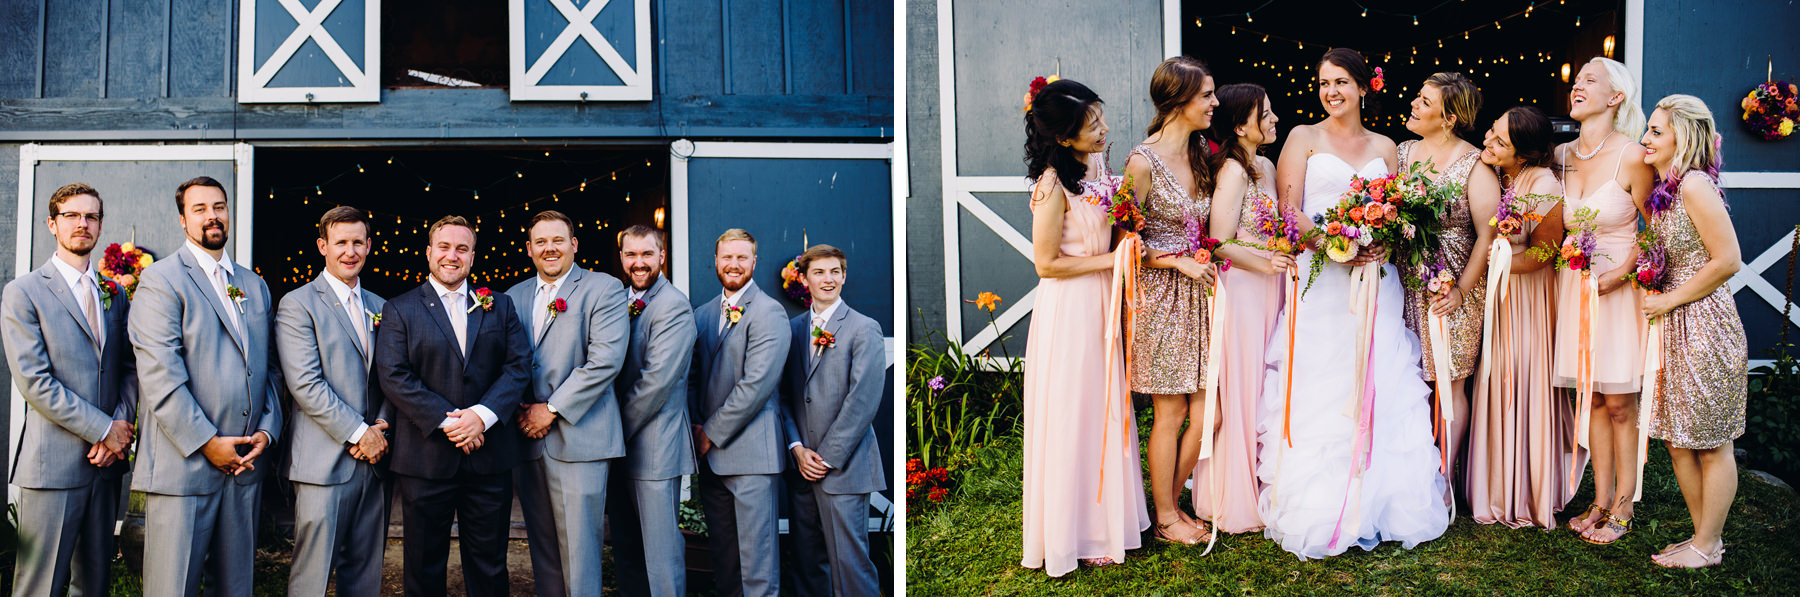 bainbridge-island-private-farm-wedding-21